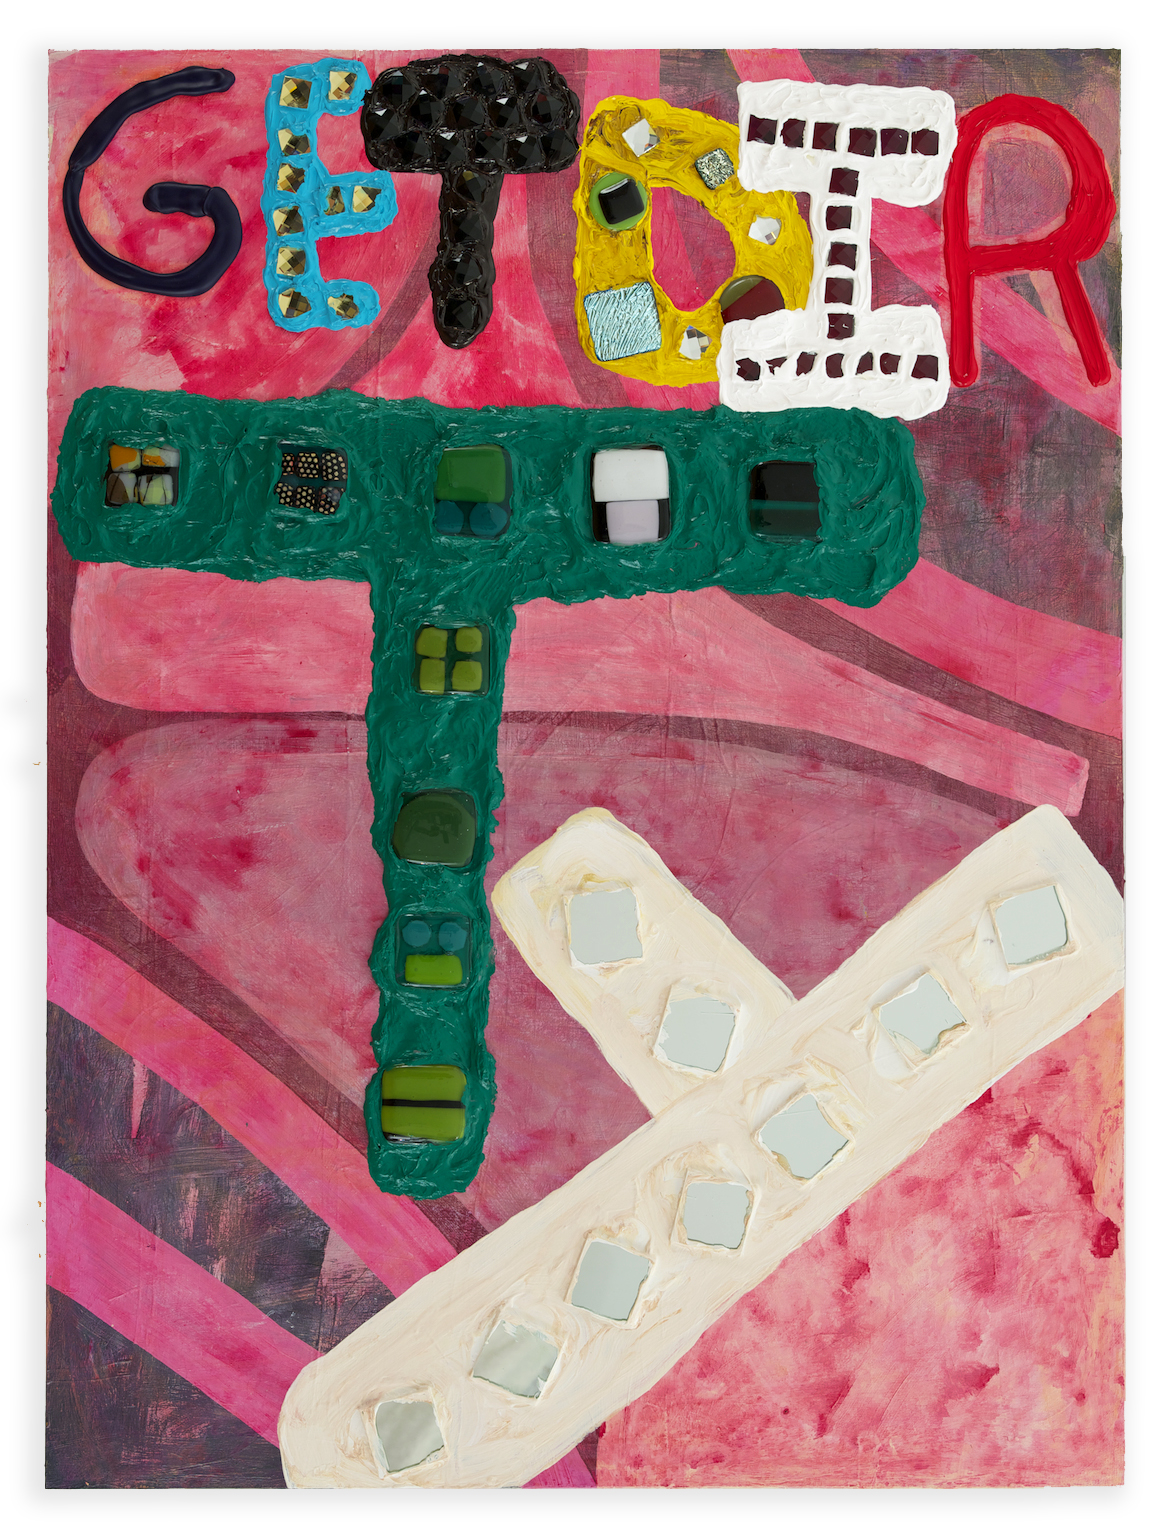 Get Dirty , 2014, acrylic, glass tile, and fused glass on wood, 40 x 30 in